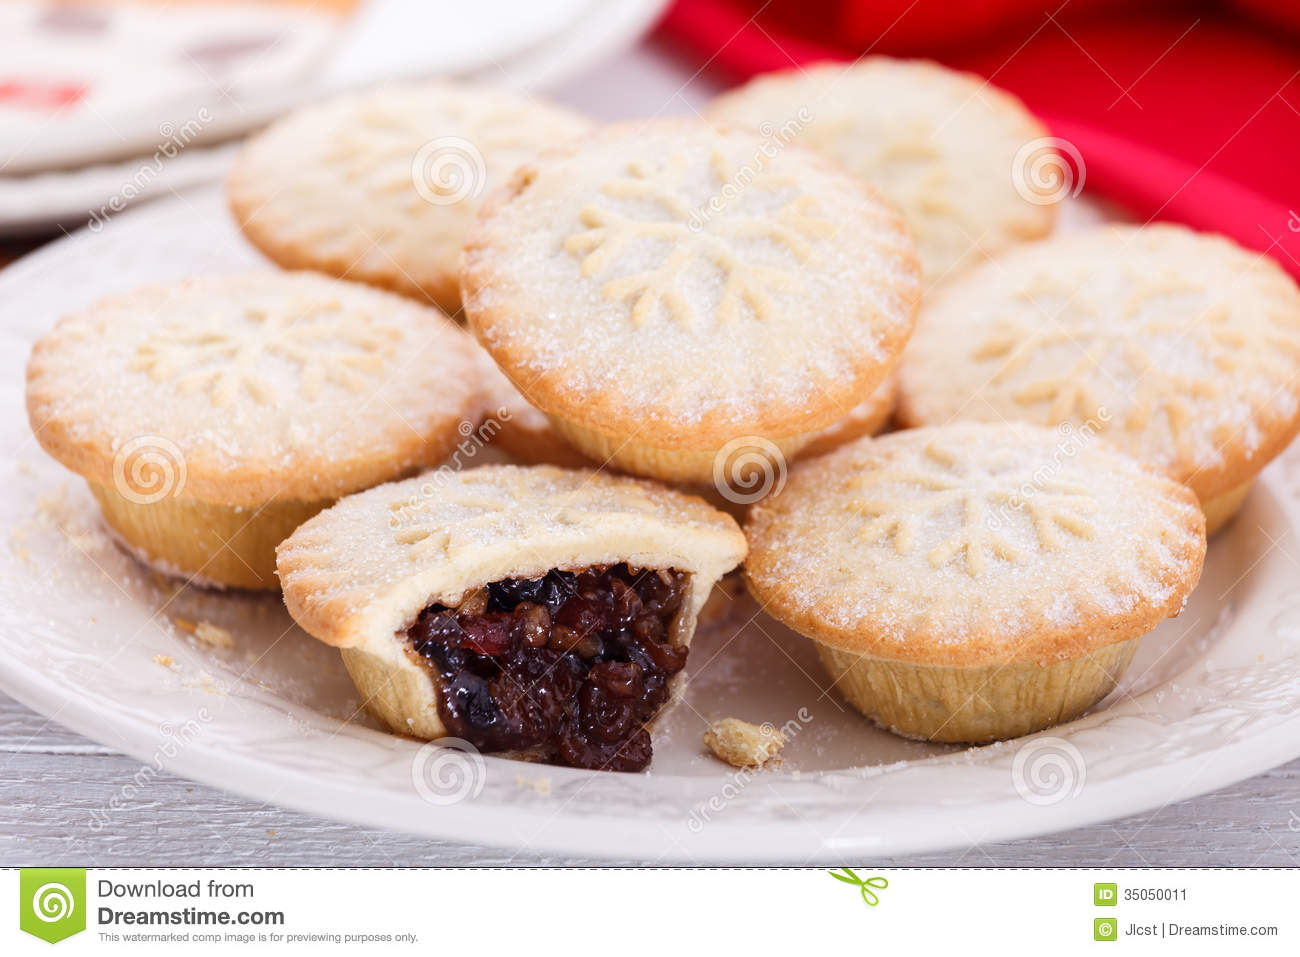 Sweet and spicy Christmas mince pies stacked on white plate.